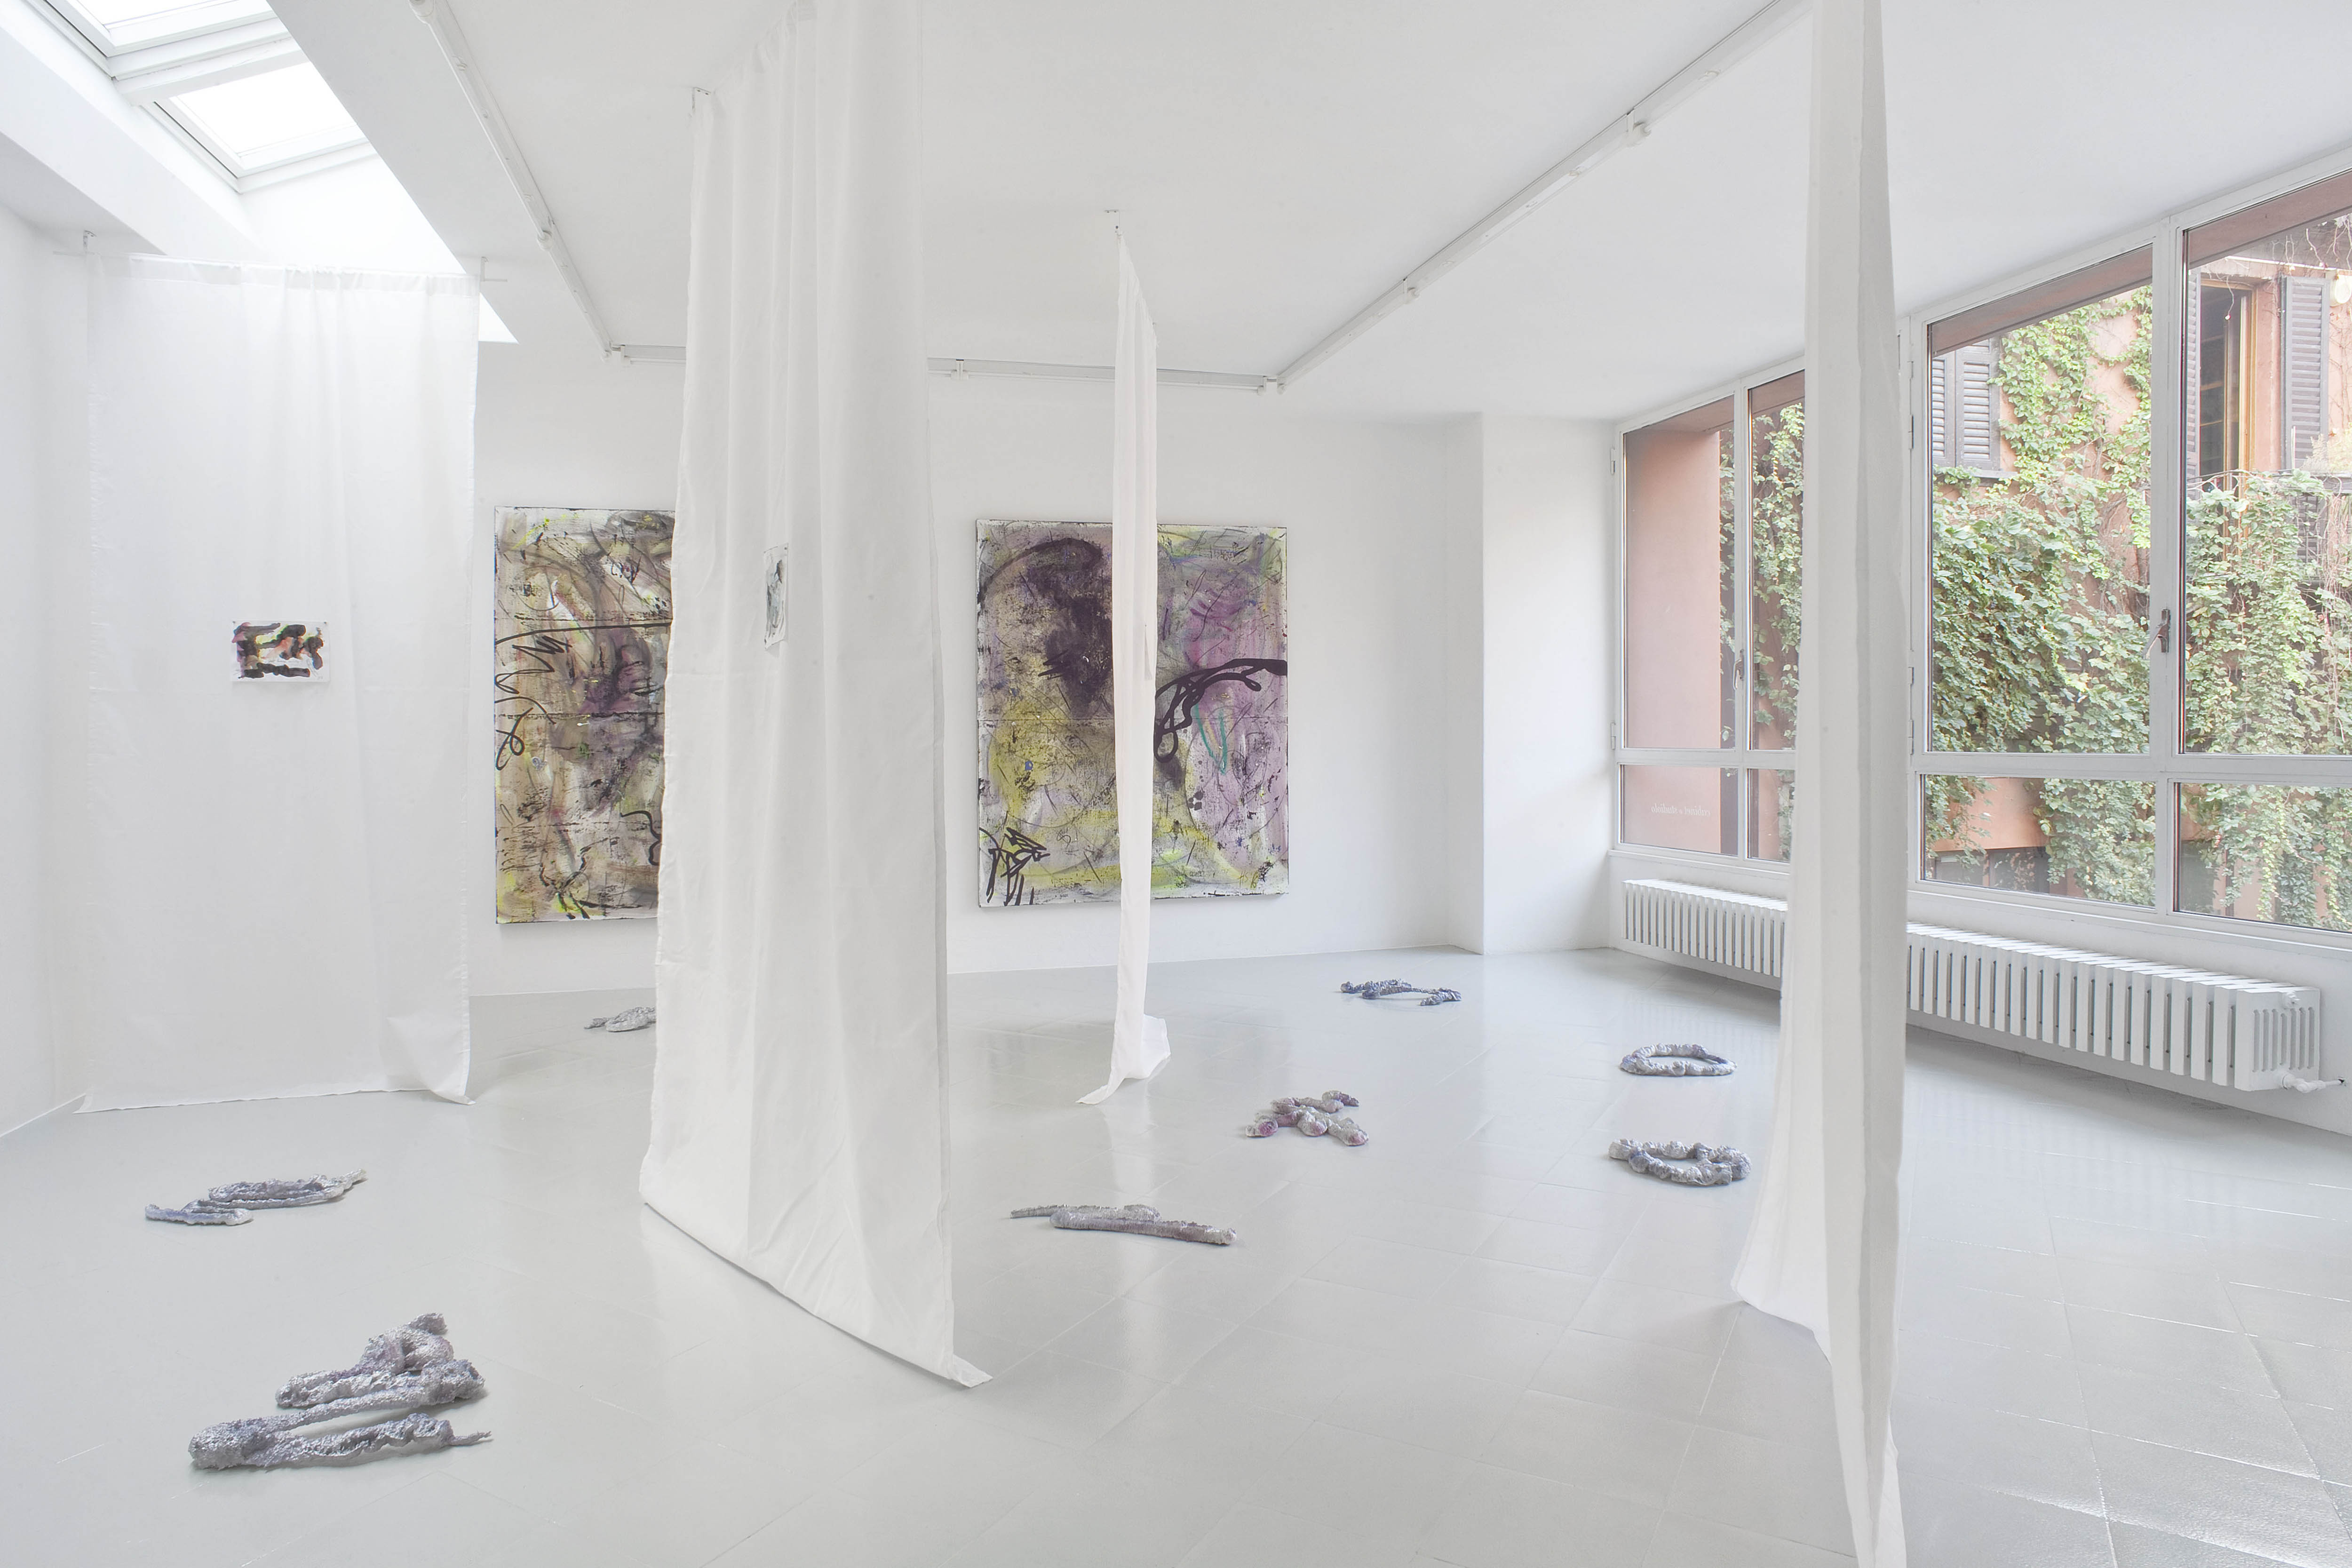 14 - Henning Strassburger Superet Exit System Installation View 2016 Studiolo Milan copia 2